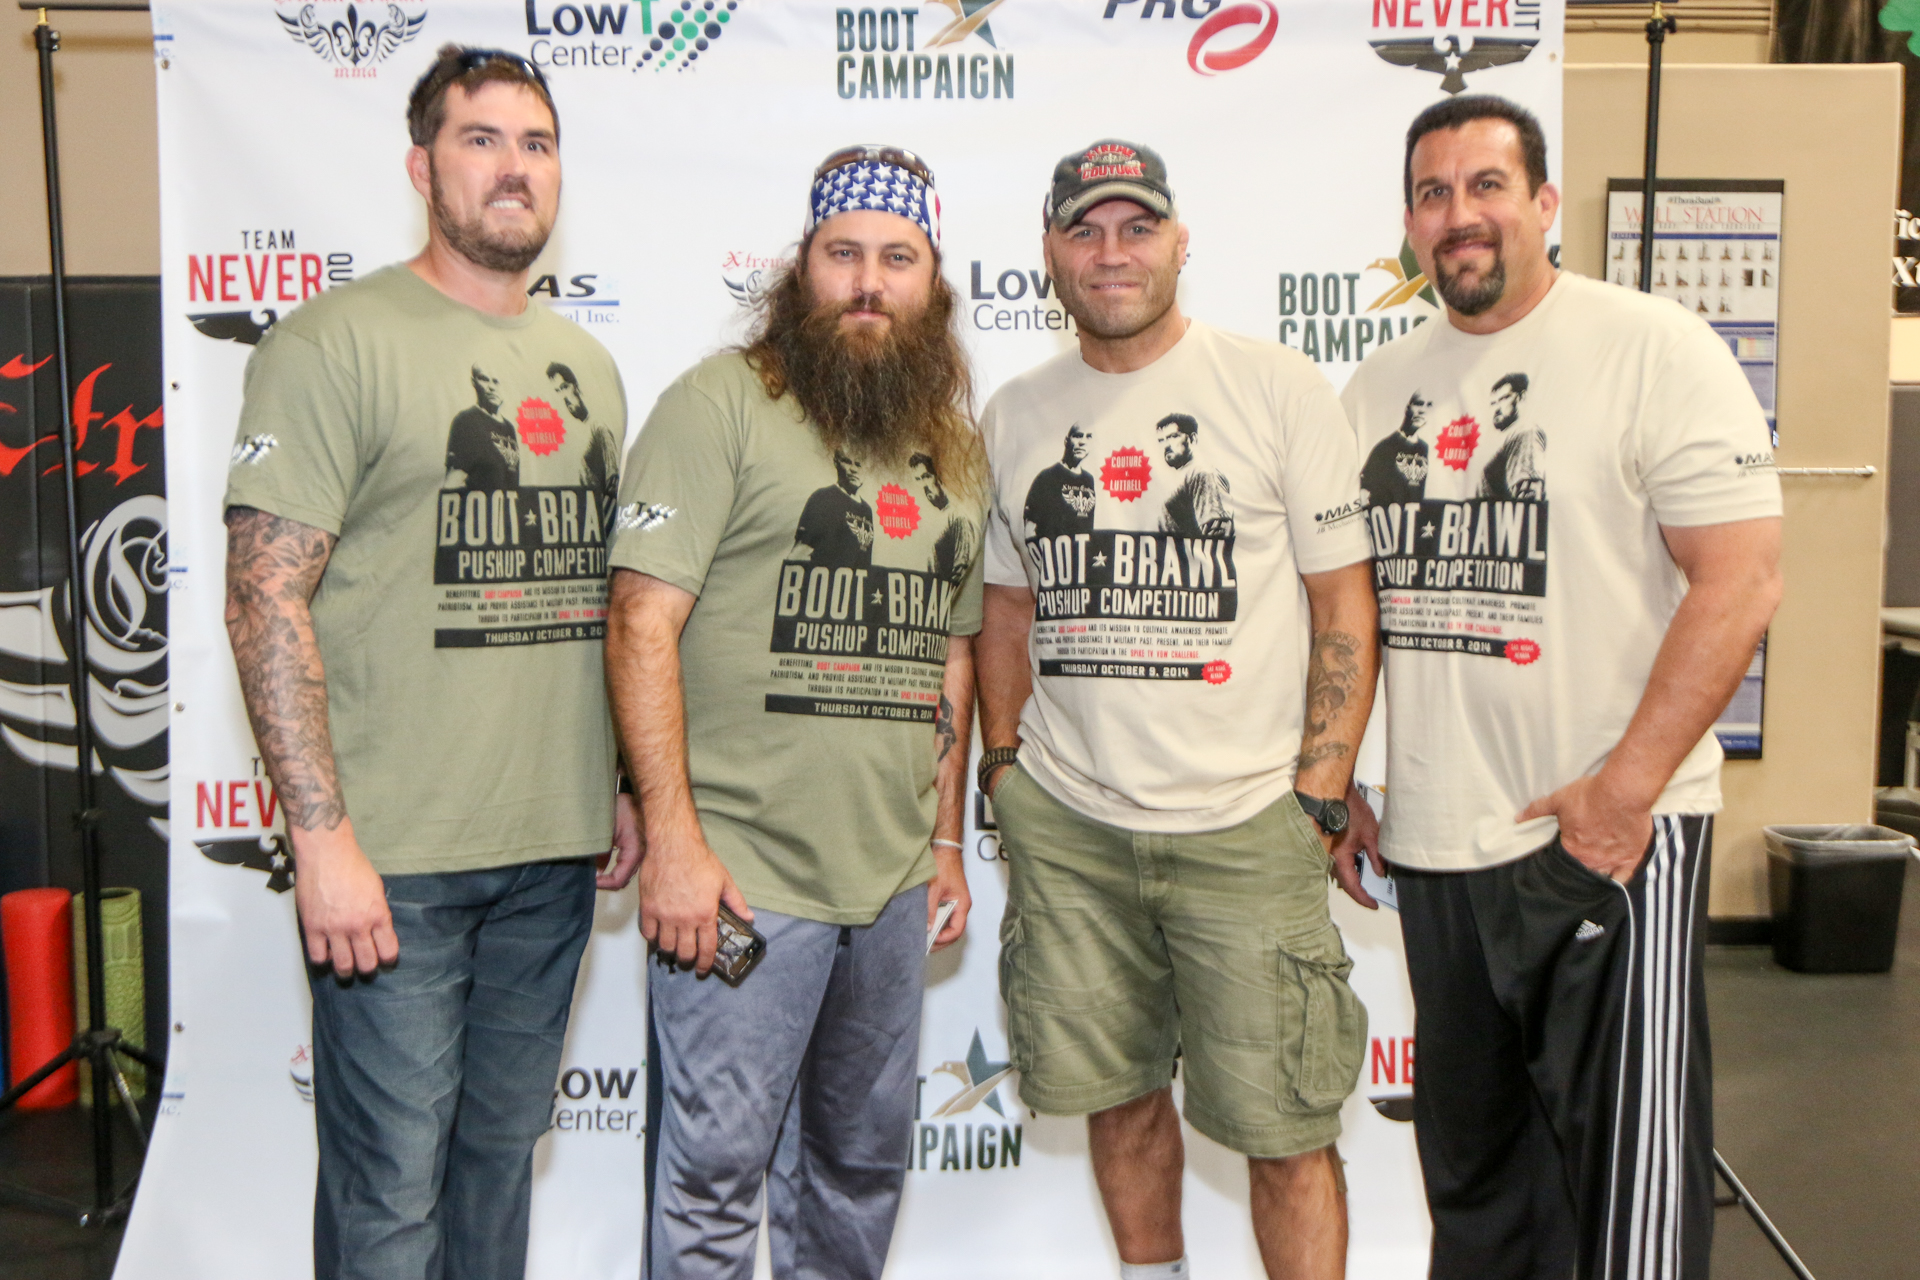 boot-campaign-brawl-randy-couture-marcus-luttrell-tracy-lee-event-conference-convention-photography-photographer-las-vegas-103